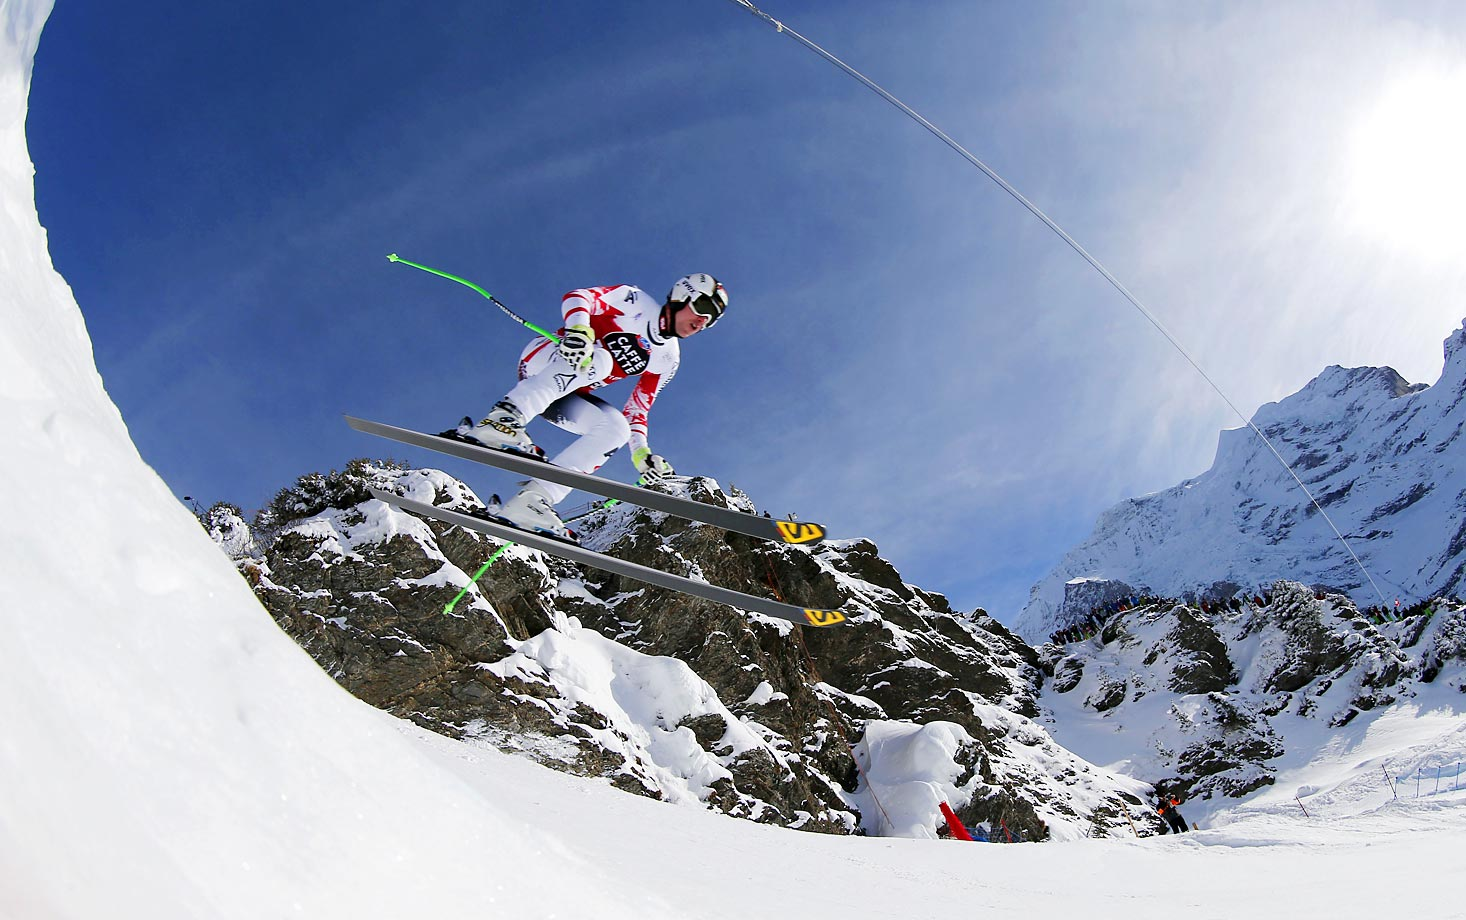 Austria's Hannes Reichelt is airborne on his way to win a World Cup downhill, in Wengen, Switzerland.